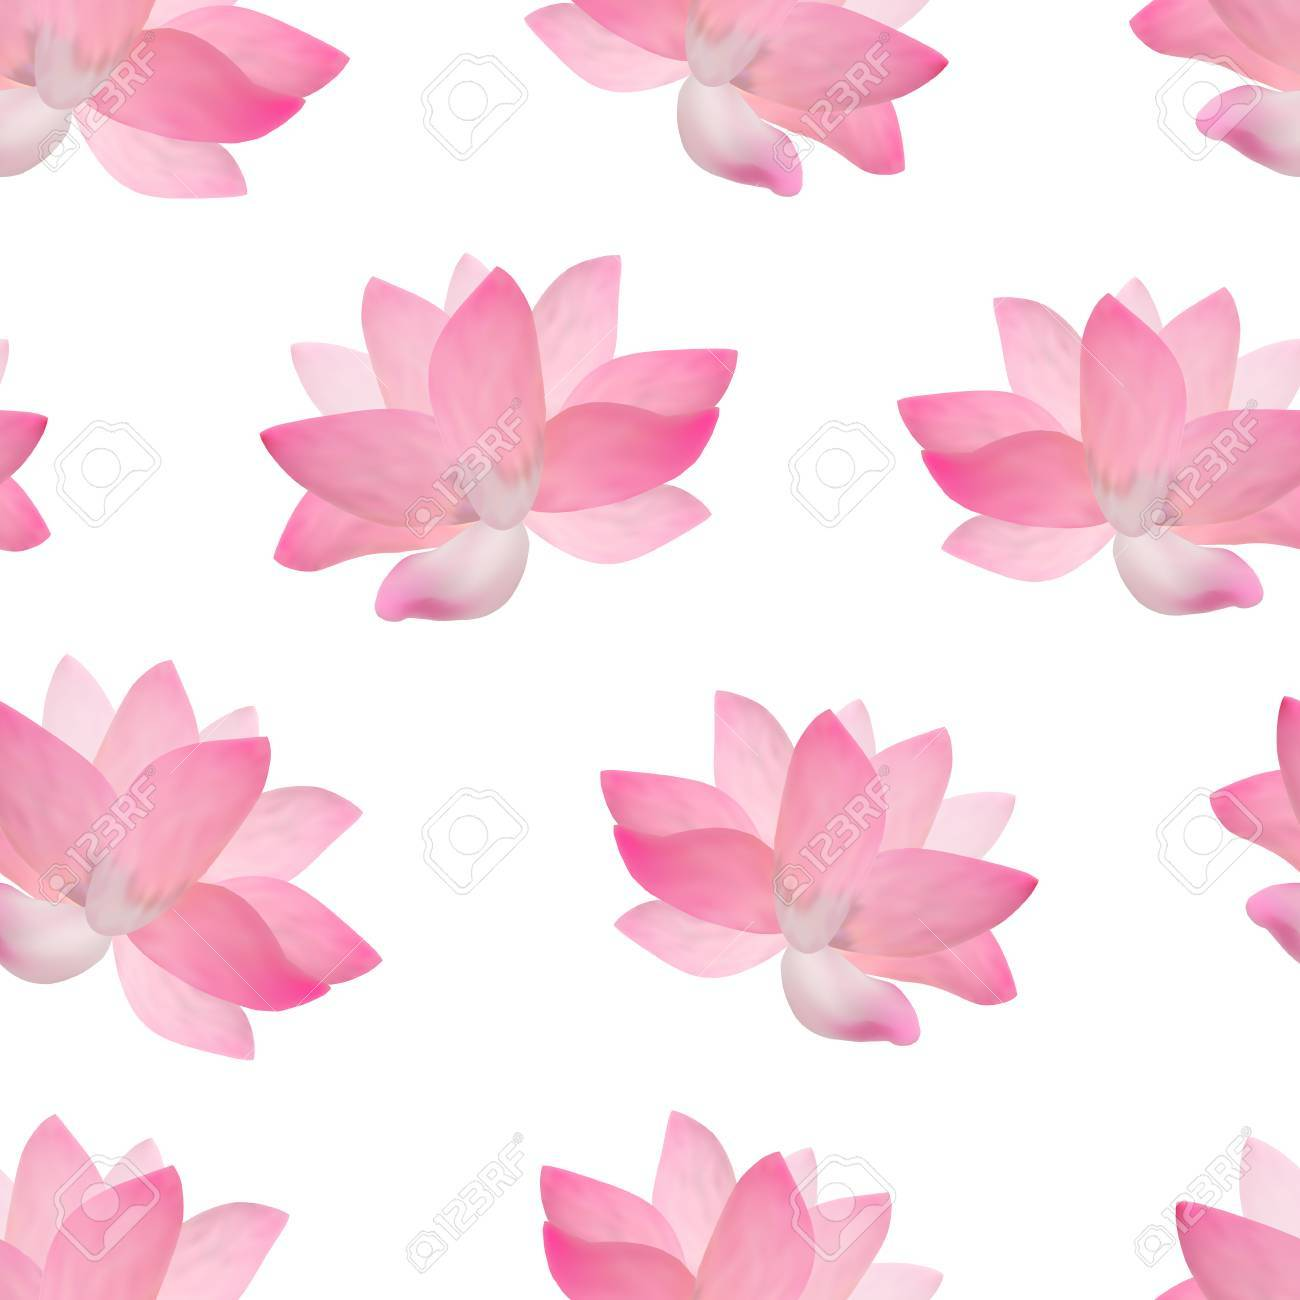 Realistic Detailed Pink Lotus Flower Background Pattern Vector